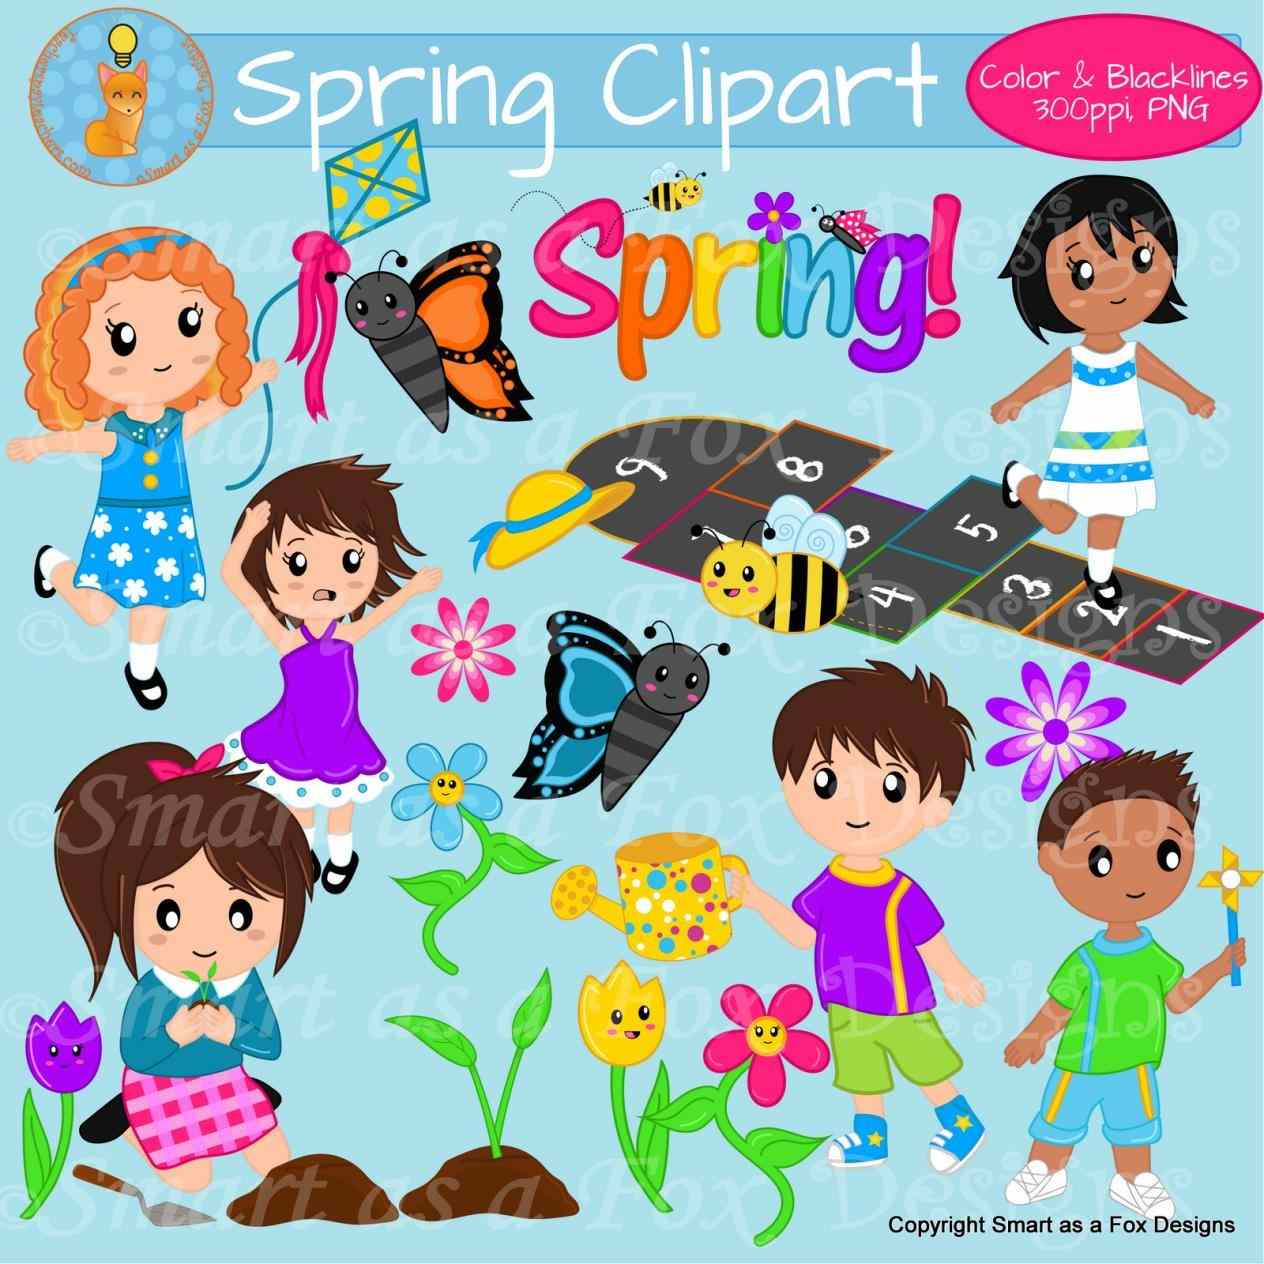 Children fox design hopscotch. Activities clipart spring season